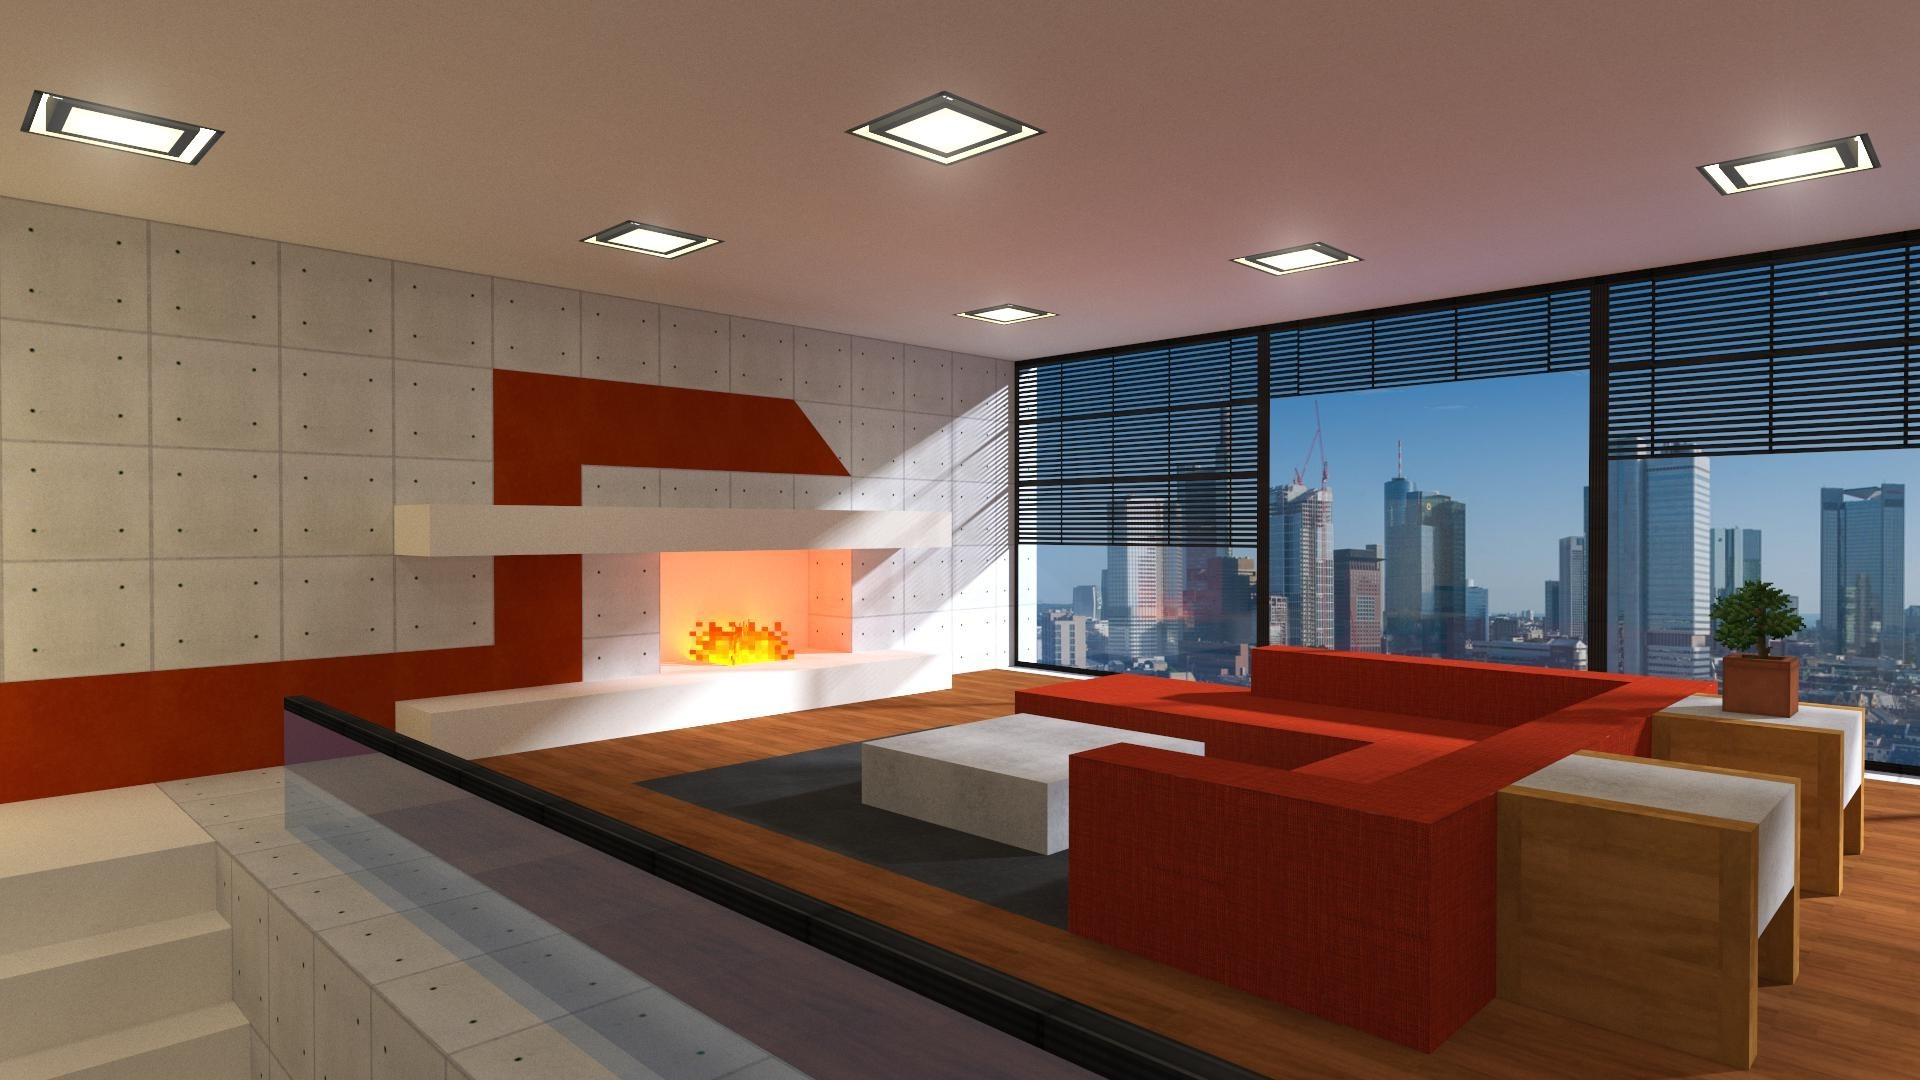 Fireplace 3d Wallpaper Minecraft Render Apartments Fireplace Window